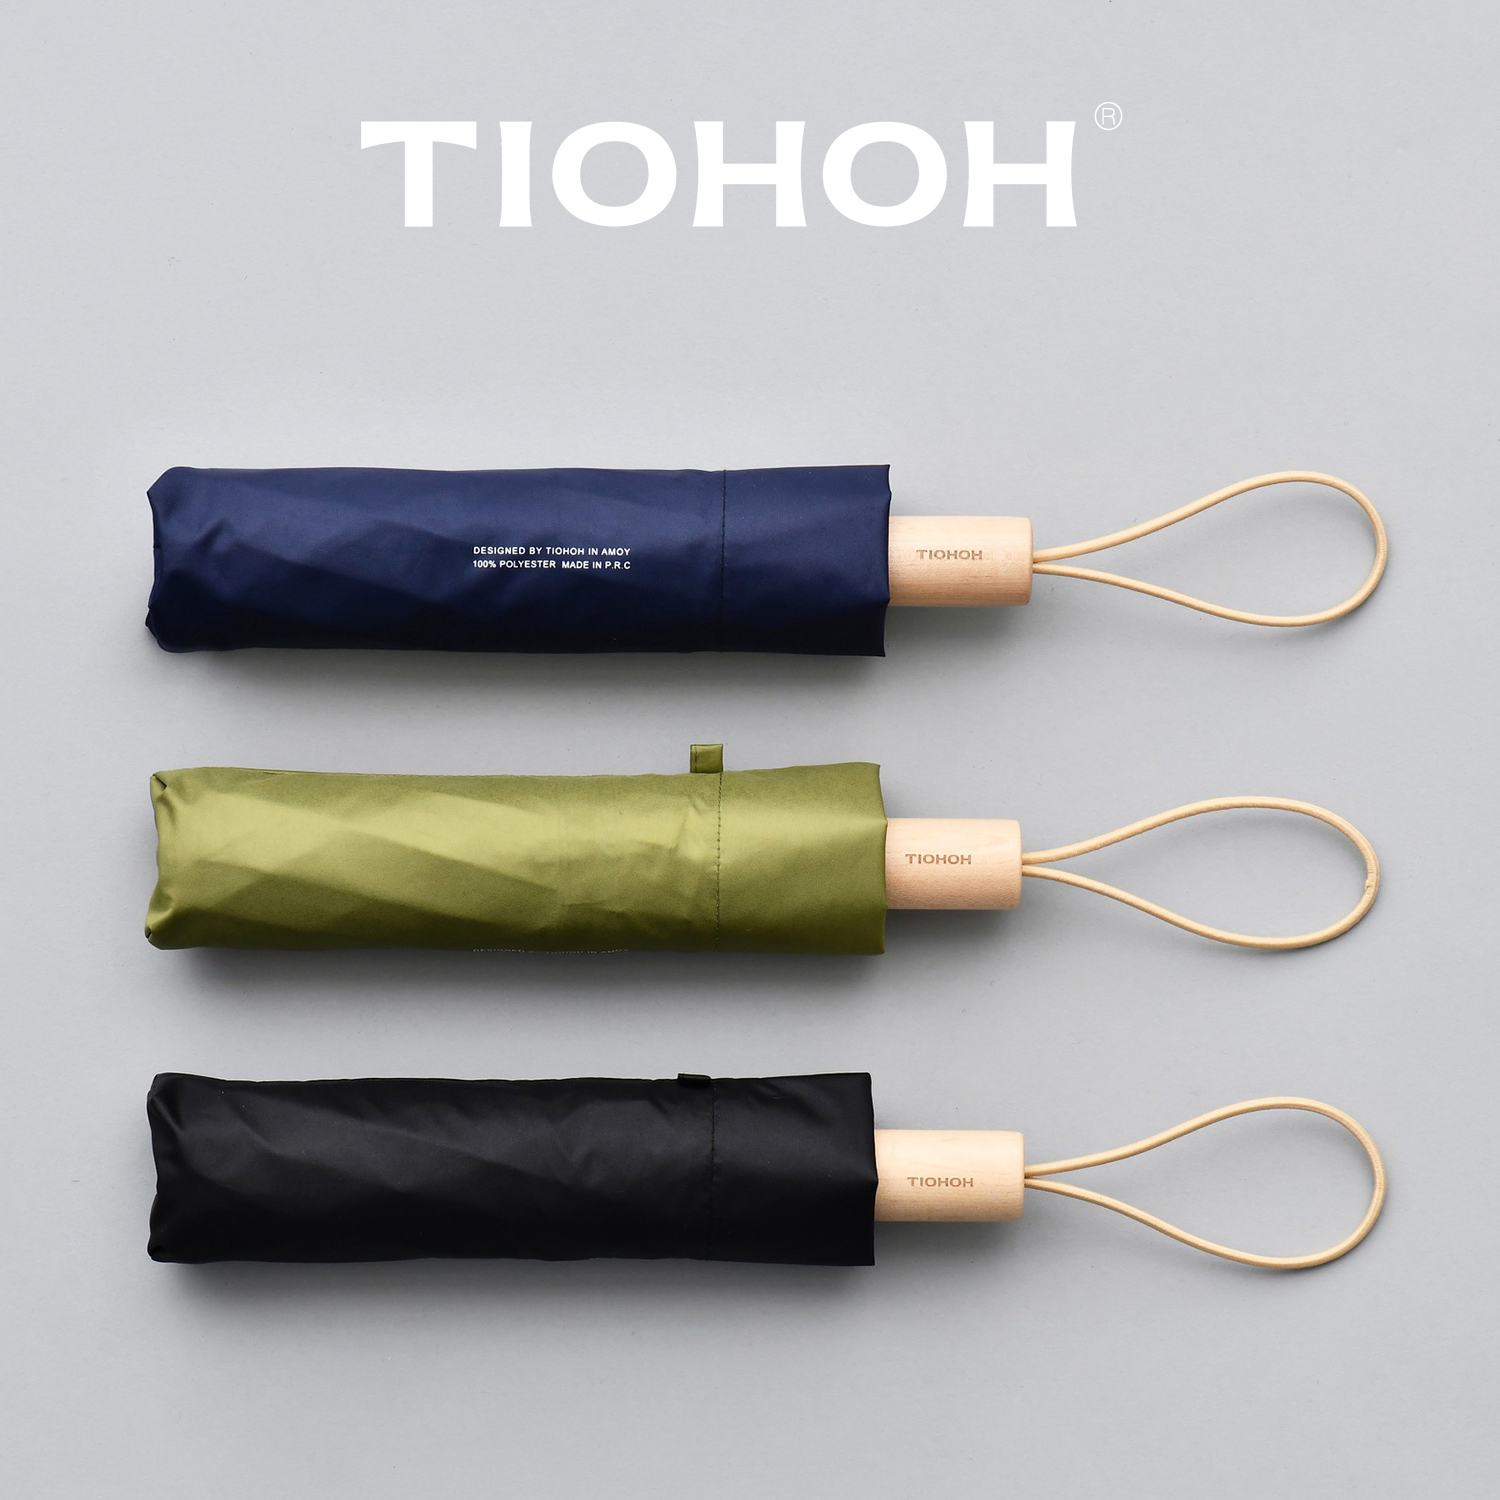 Tiohoh Sun Protection Umbrella Women Men Maple Handle Telfon Pongee Cloth Sunshade Folding Umbrellas Rain Paraguas Sunscreen